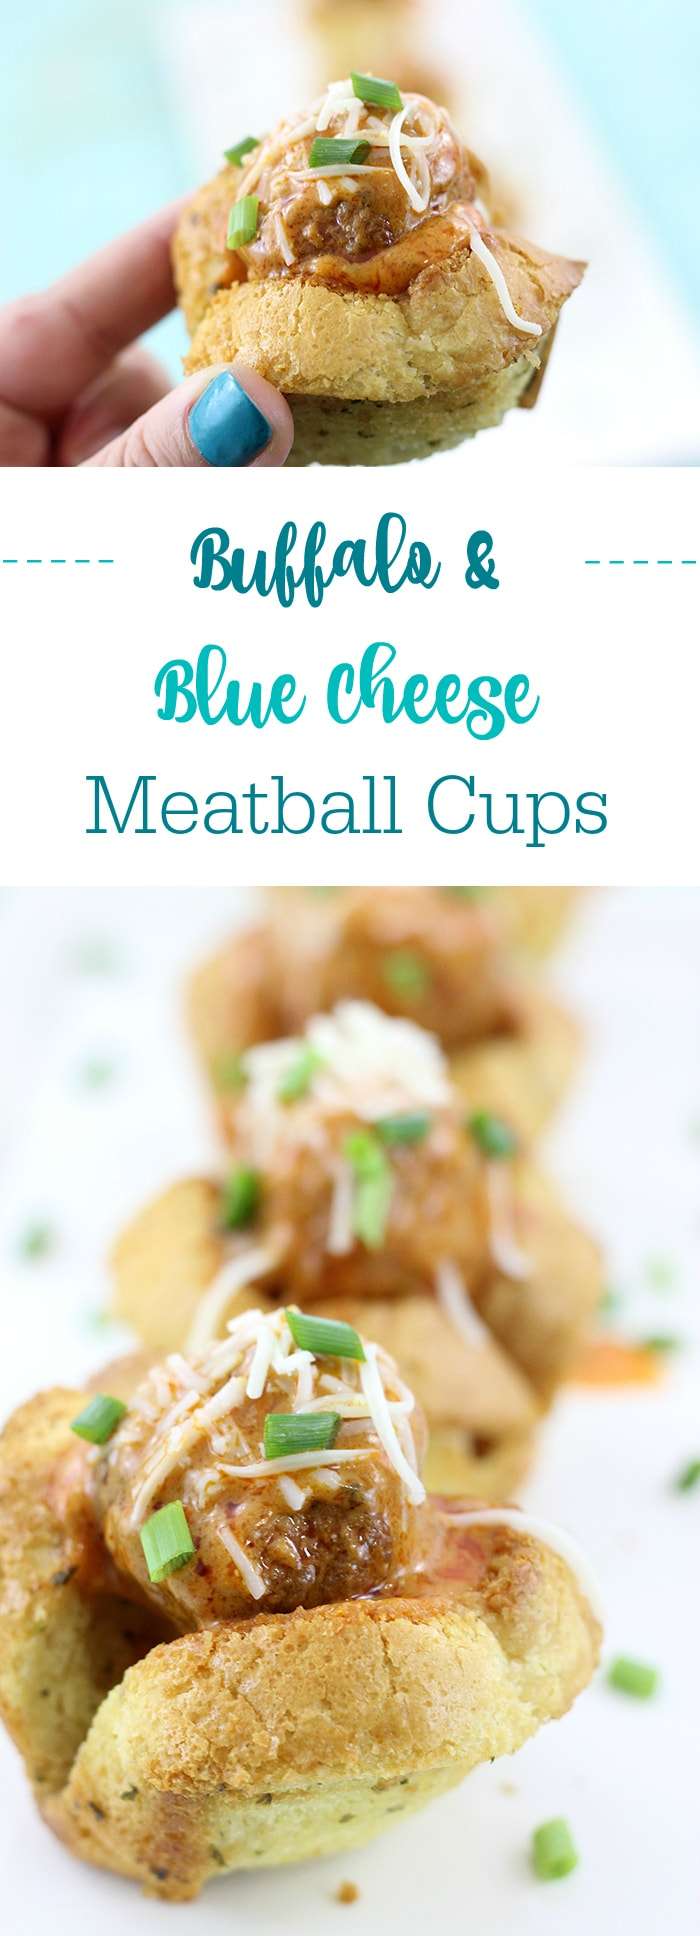 Click the image now to get this Buffalo Blue Cheese Meatball Cups Made in the Slow Cooker now.